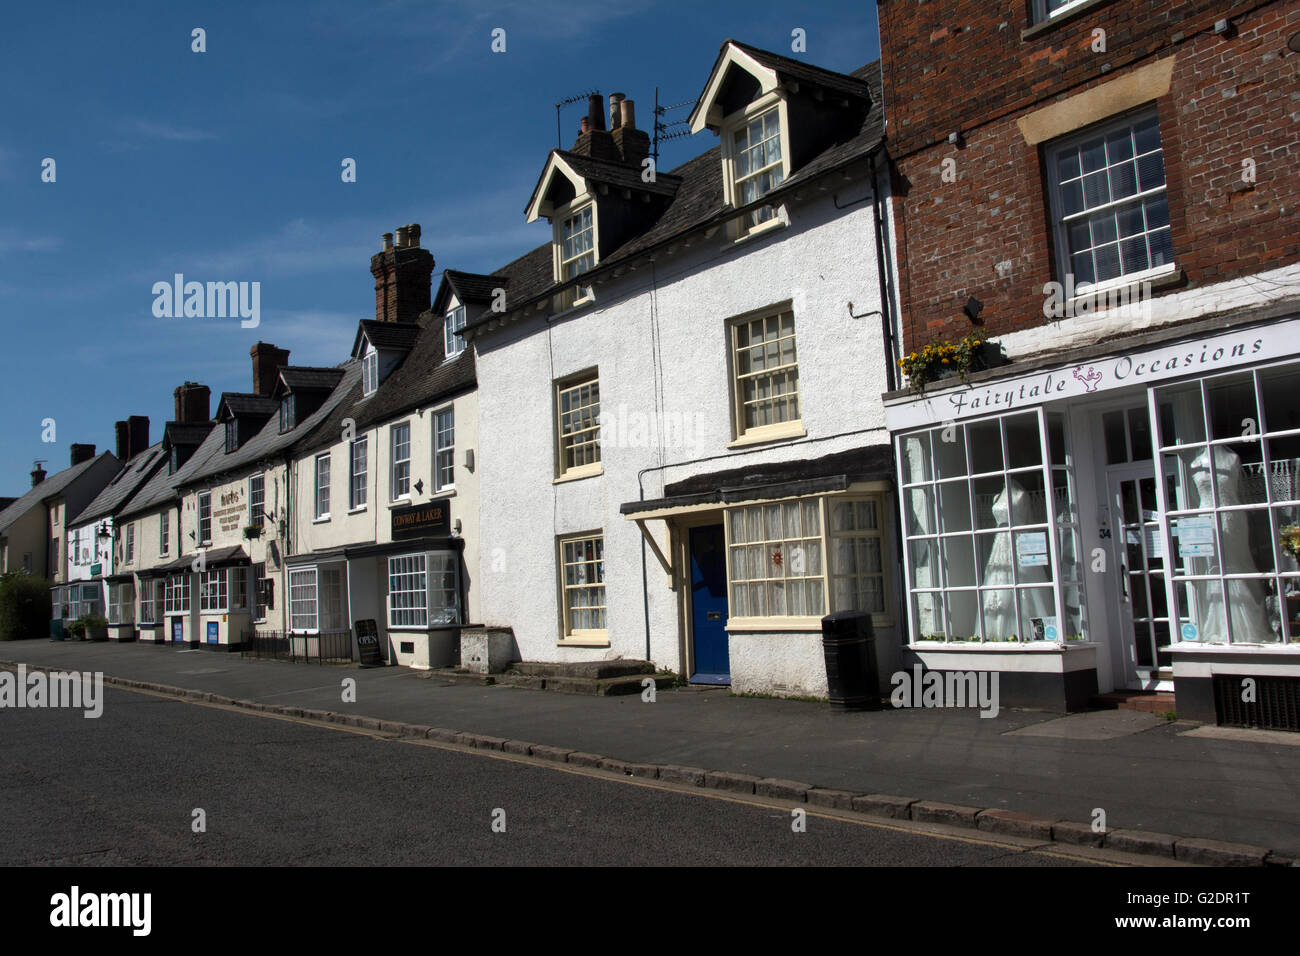 WILTSHIRE; HIGHWORTH; HIGH STREET HOUSES - Stock Image